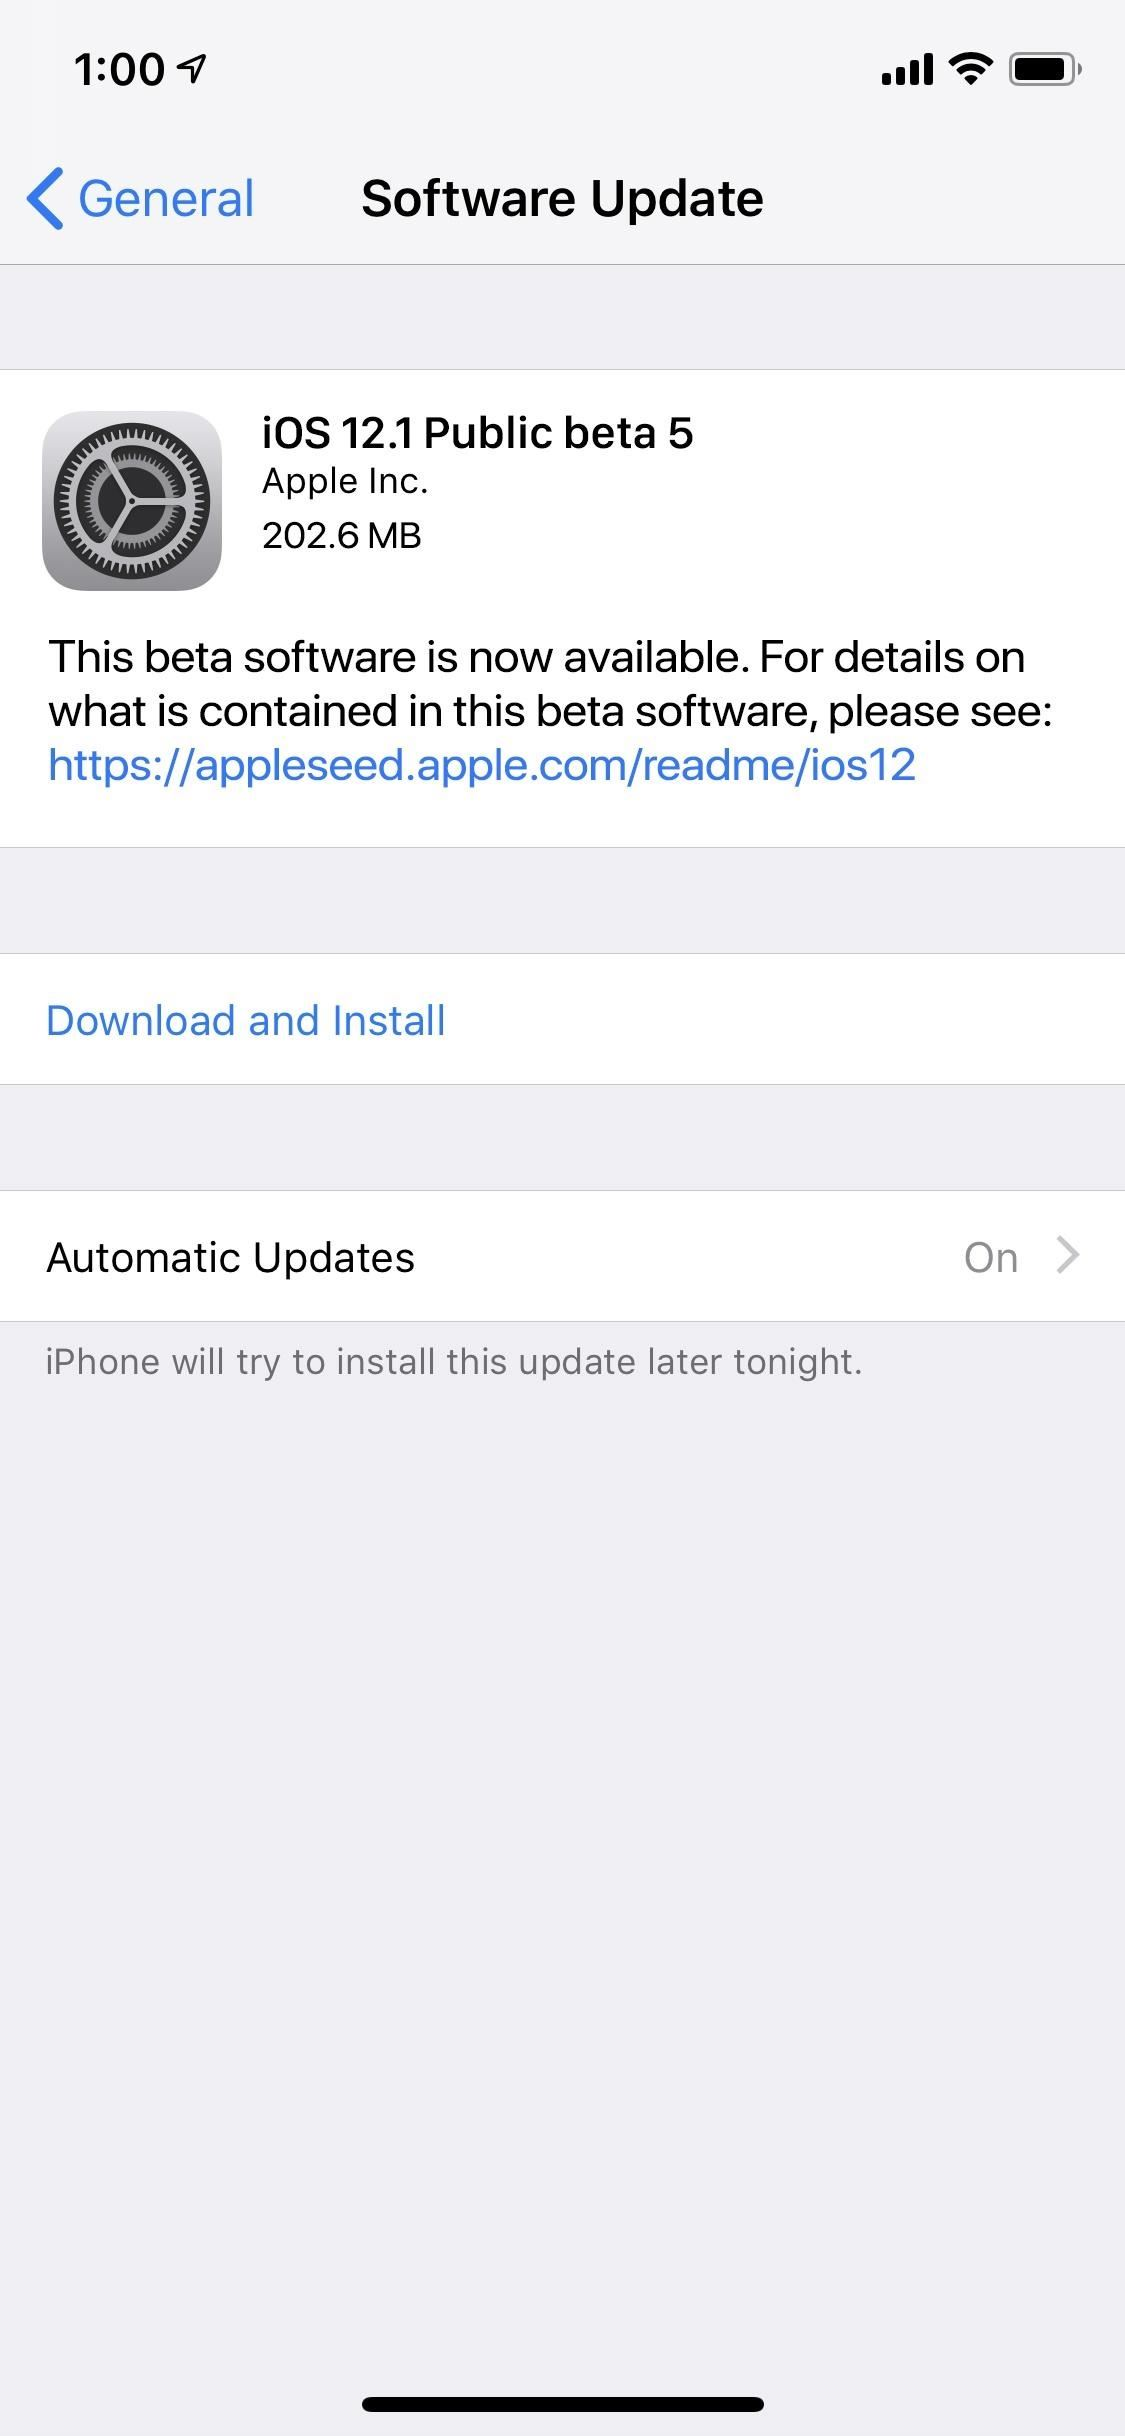 iOS 12.1 Public Beta 5 for iPhone Released to Software Testers